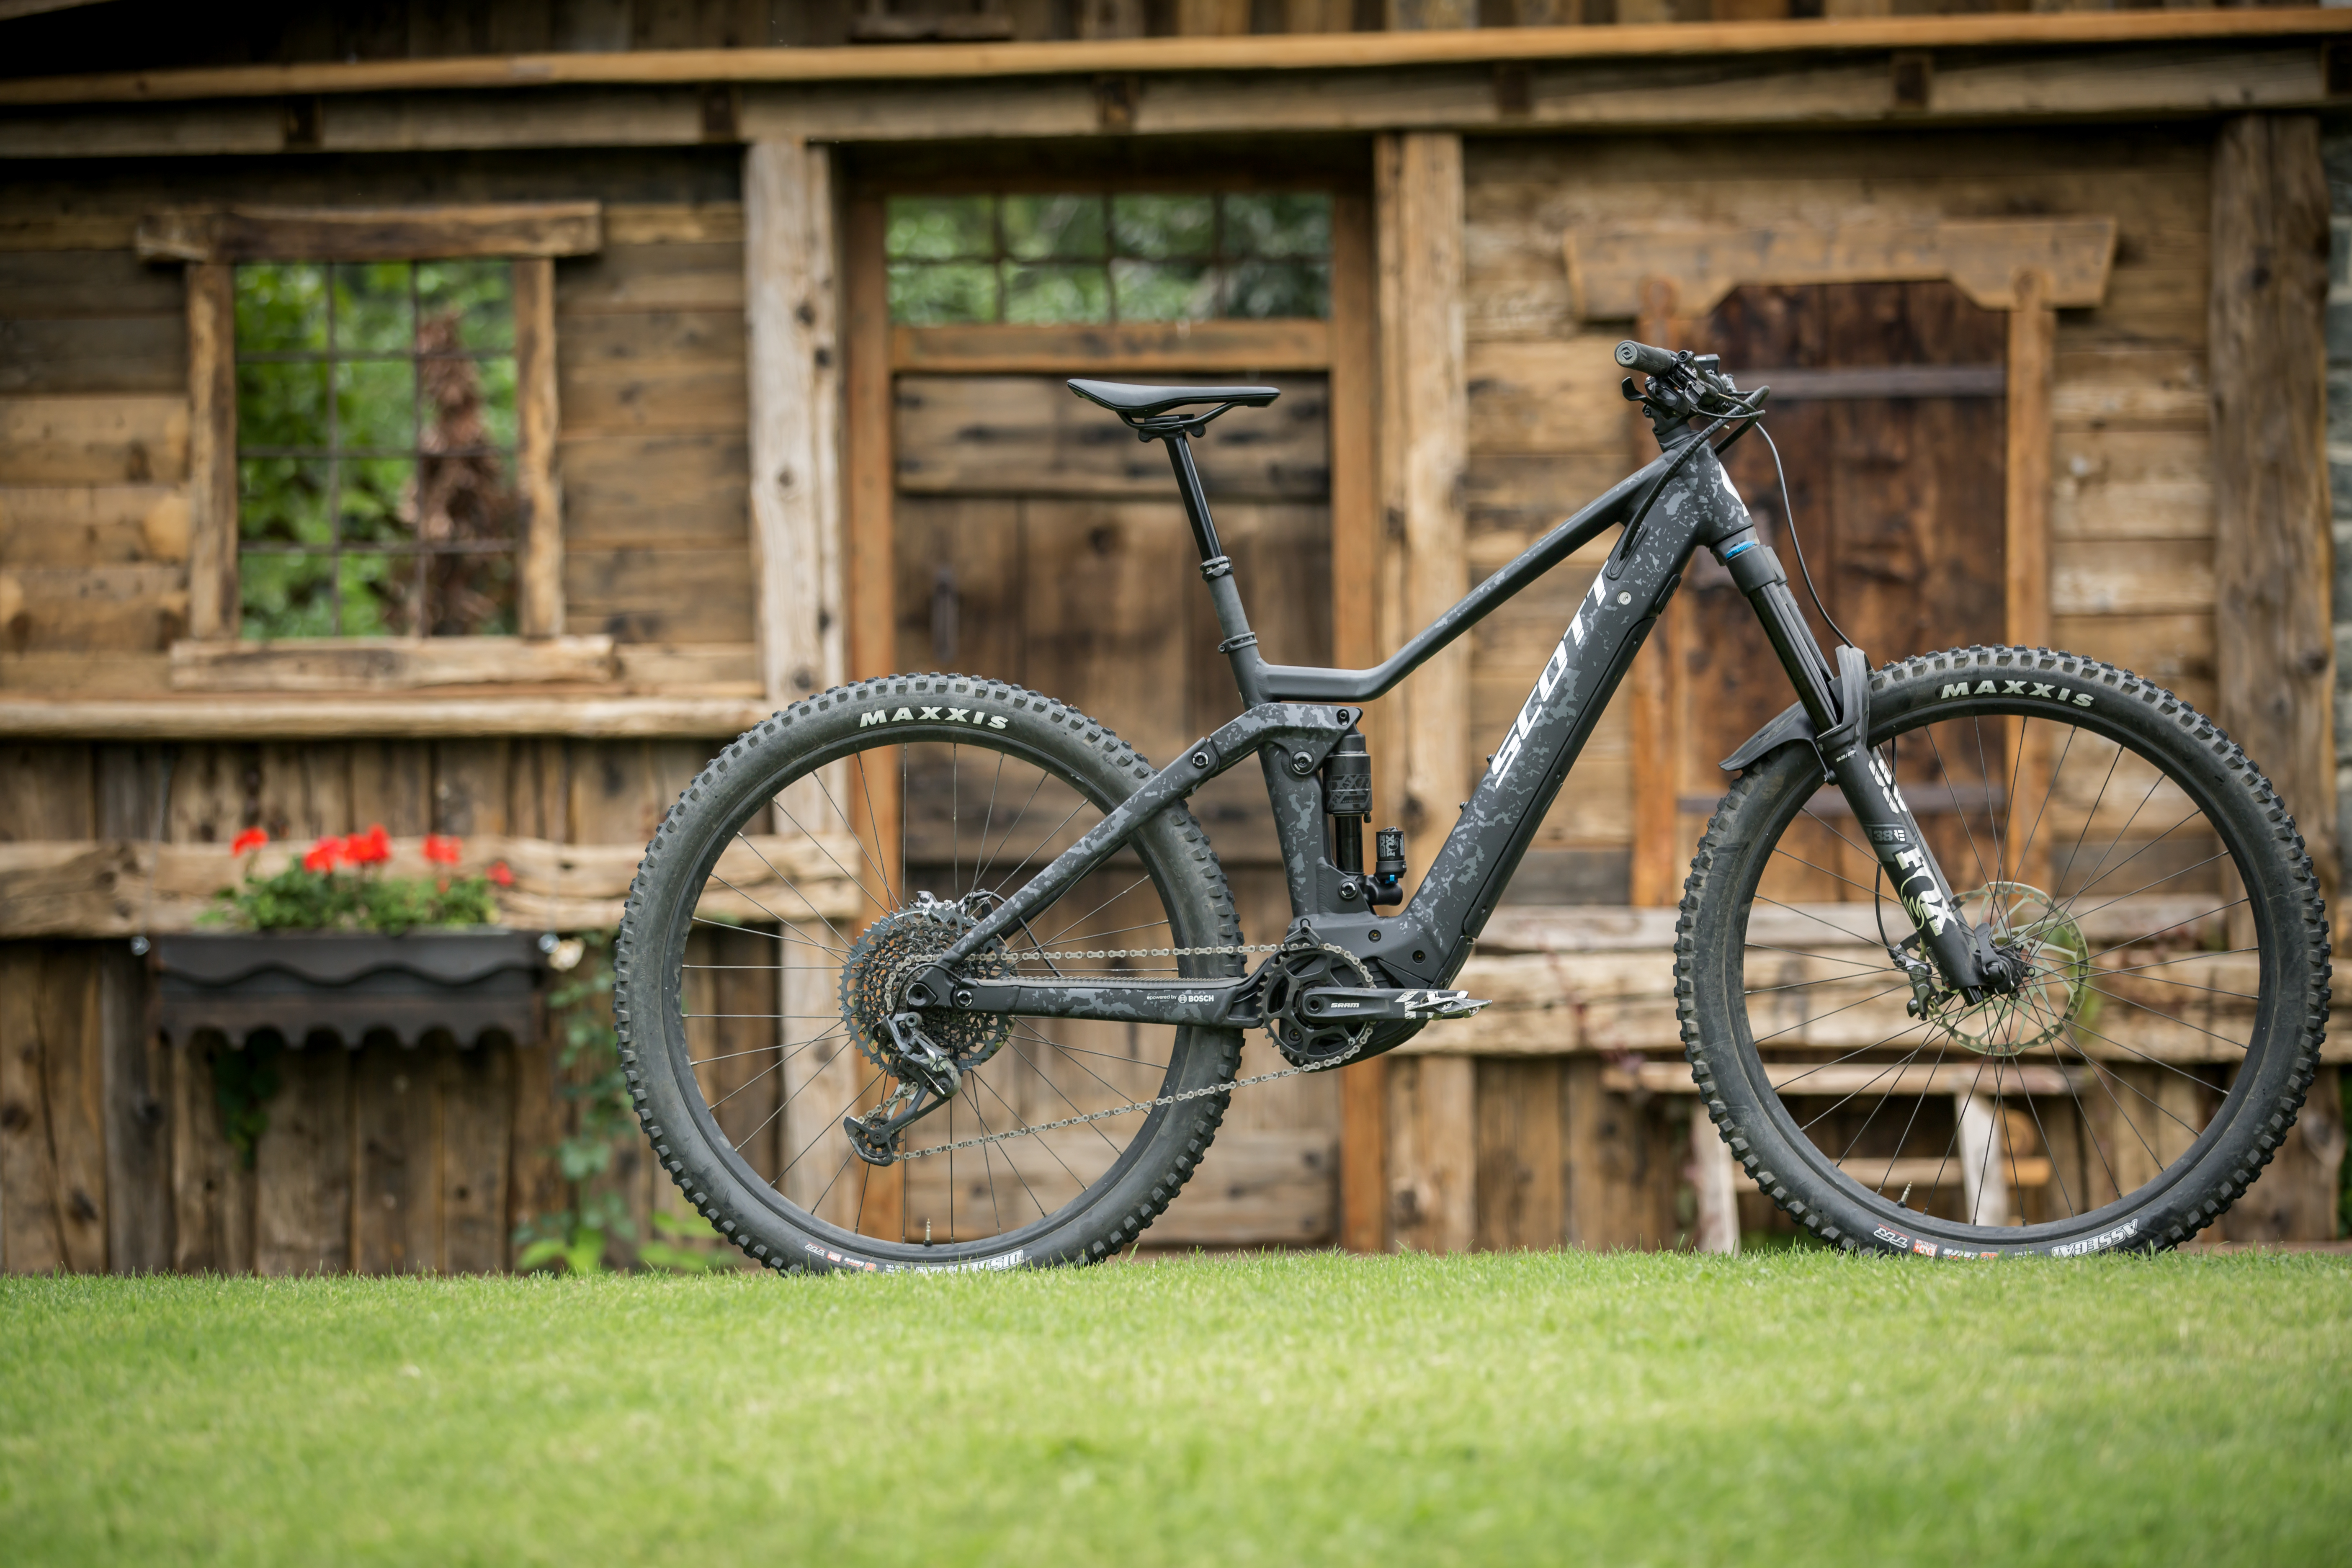 Scott pumps up its e-bike range with the all-new Ransom eRide - MBR